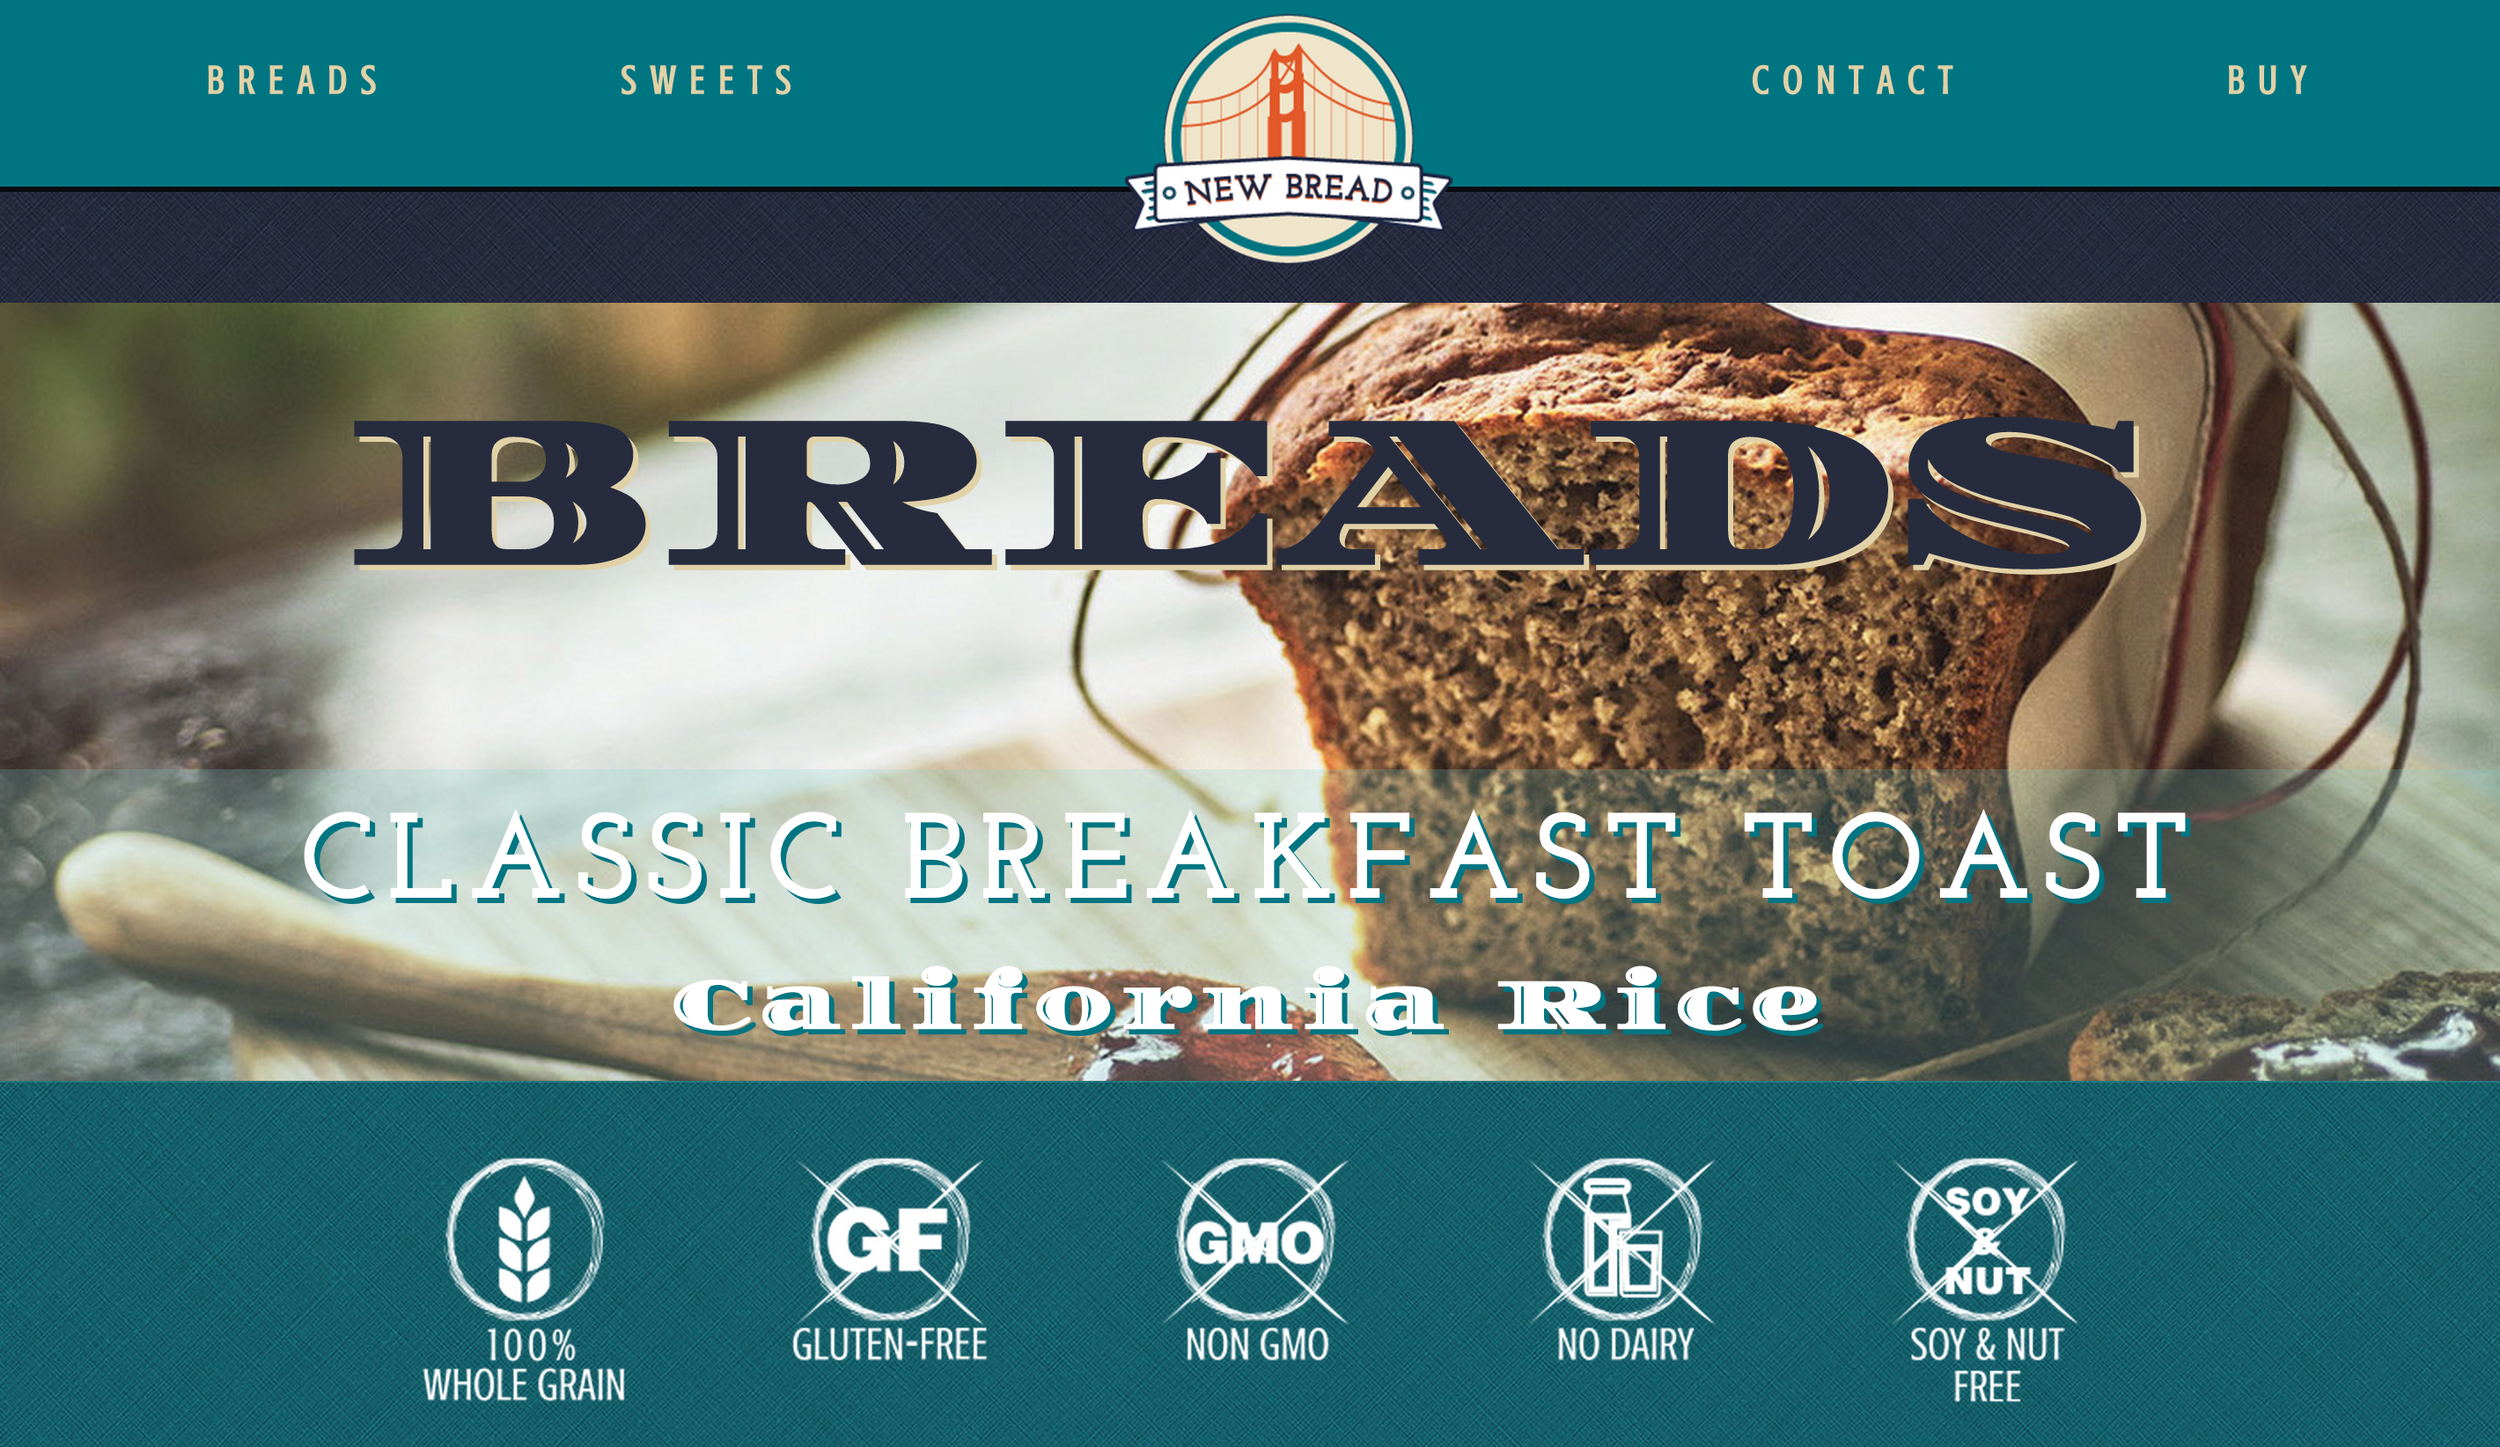 Custom responsive web design & build.Hand-coded with HTML5, CSS3, Javascript, jQuery, with animation.